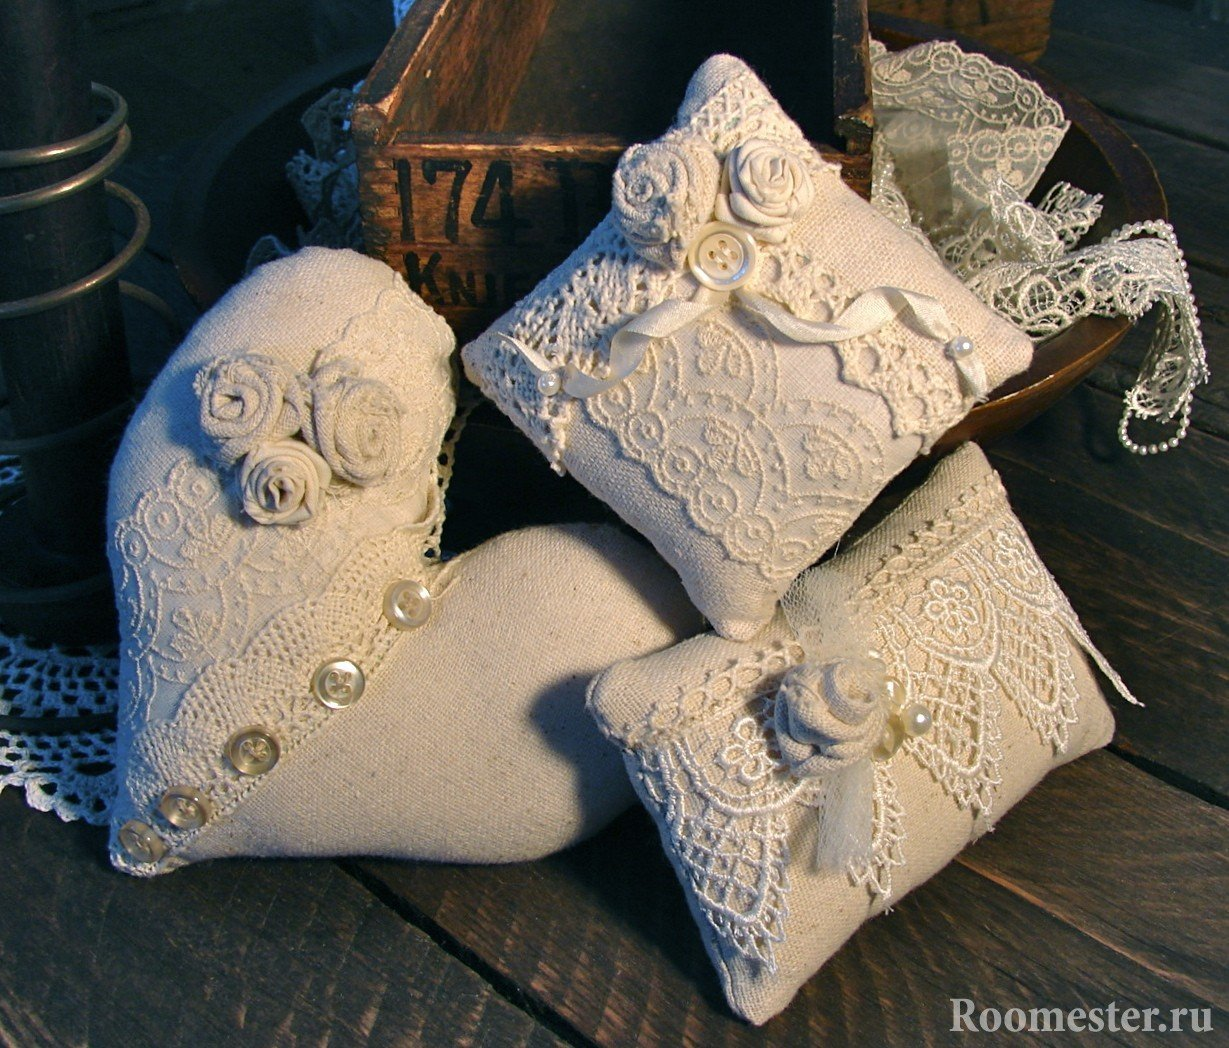 Lace pillows in the style of Provence